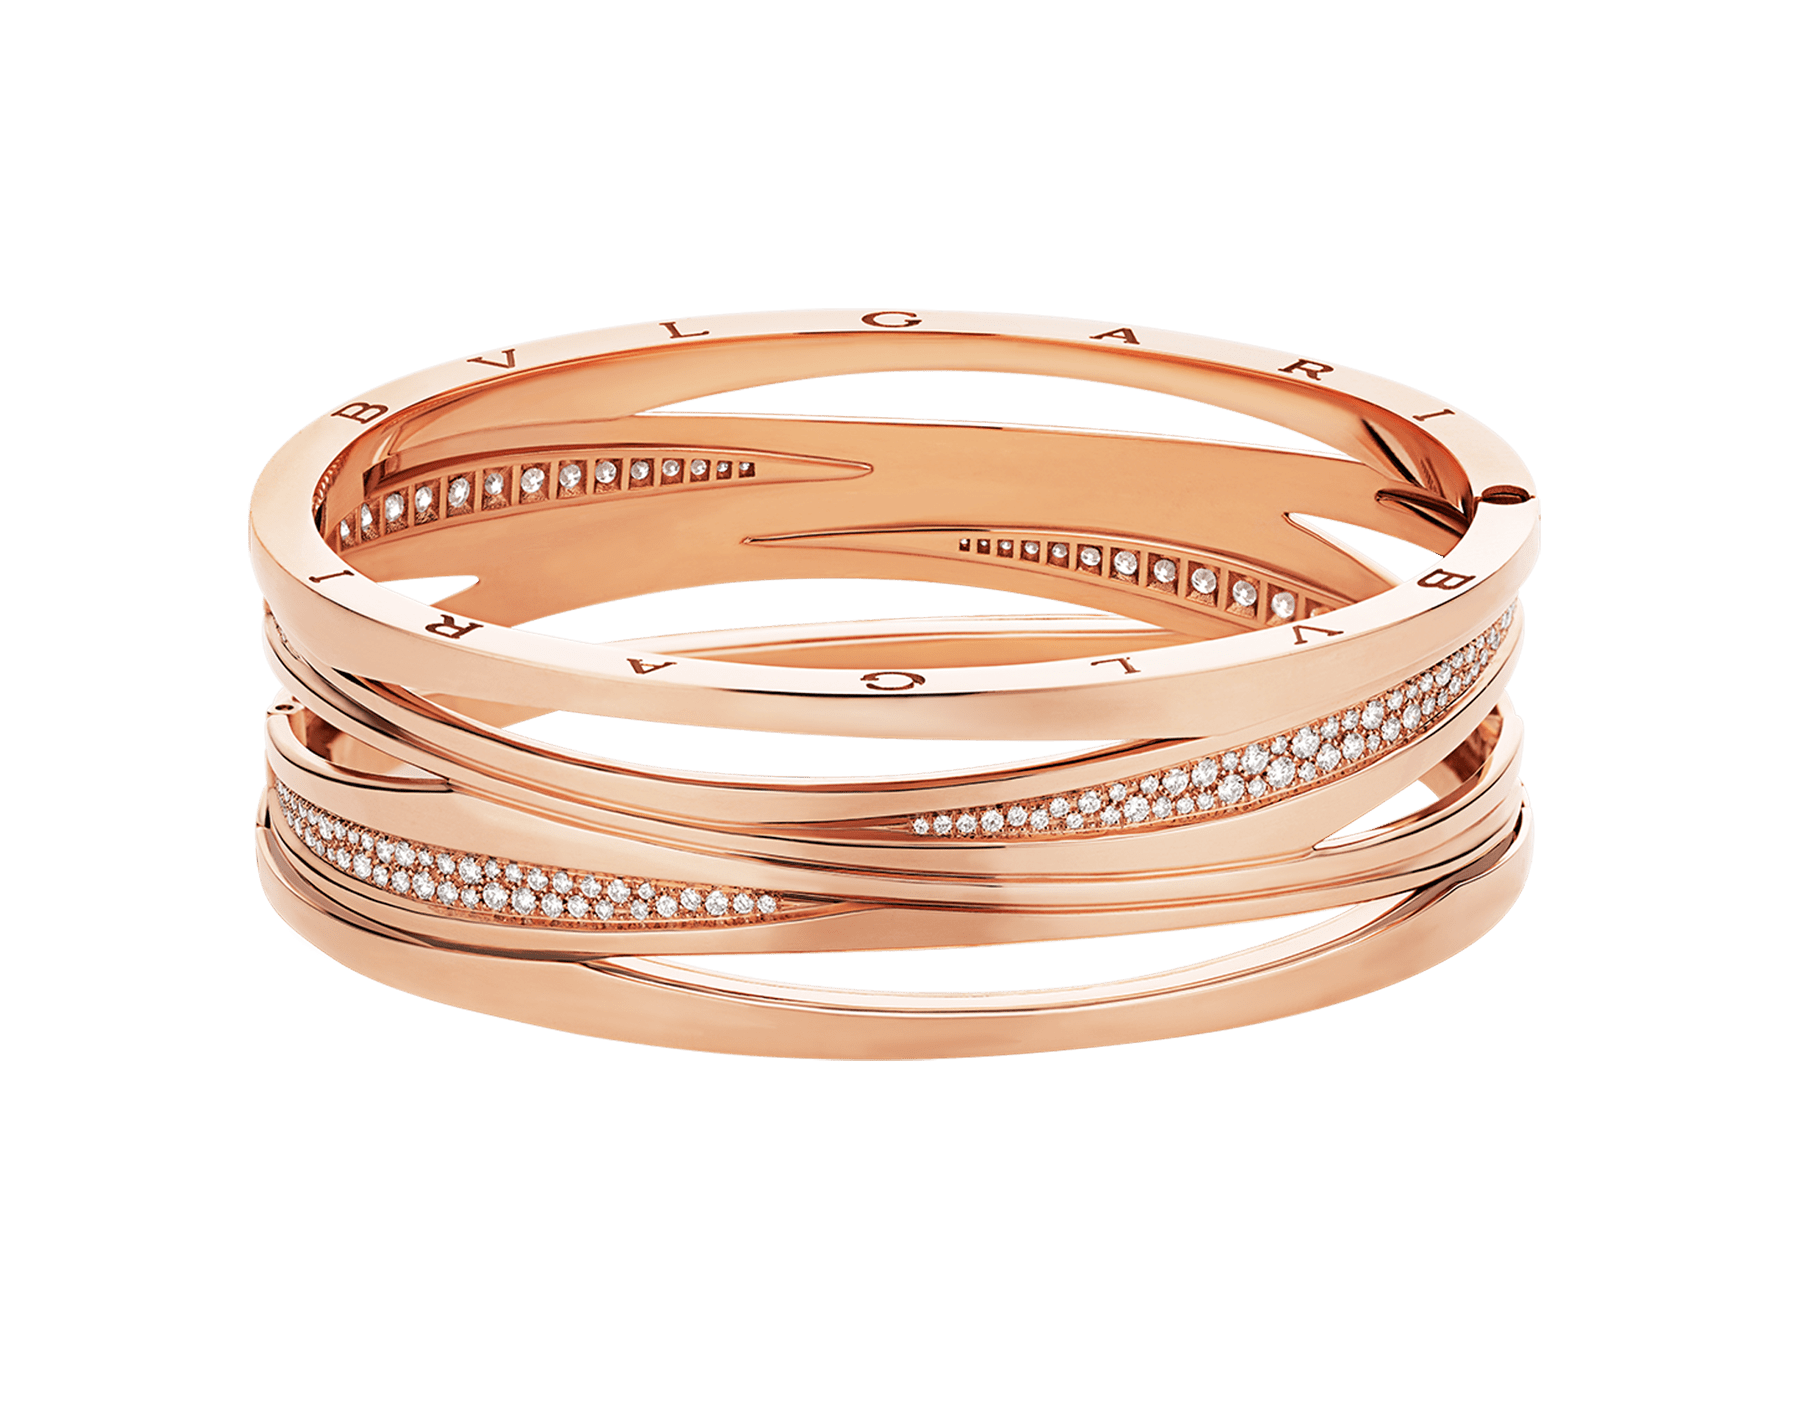 B.zero1 Design Legend bracelet in 18 kt rose gold set with pavé diamonds (1.45 ct) on the spiral BR858728 image 2